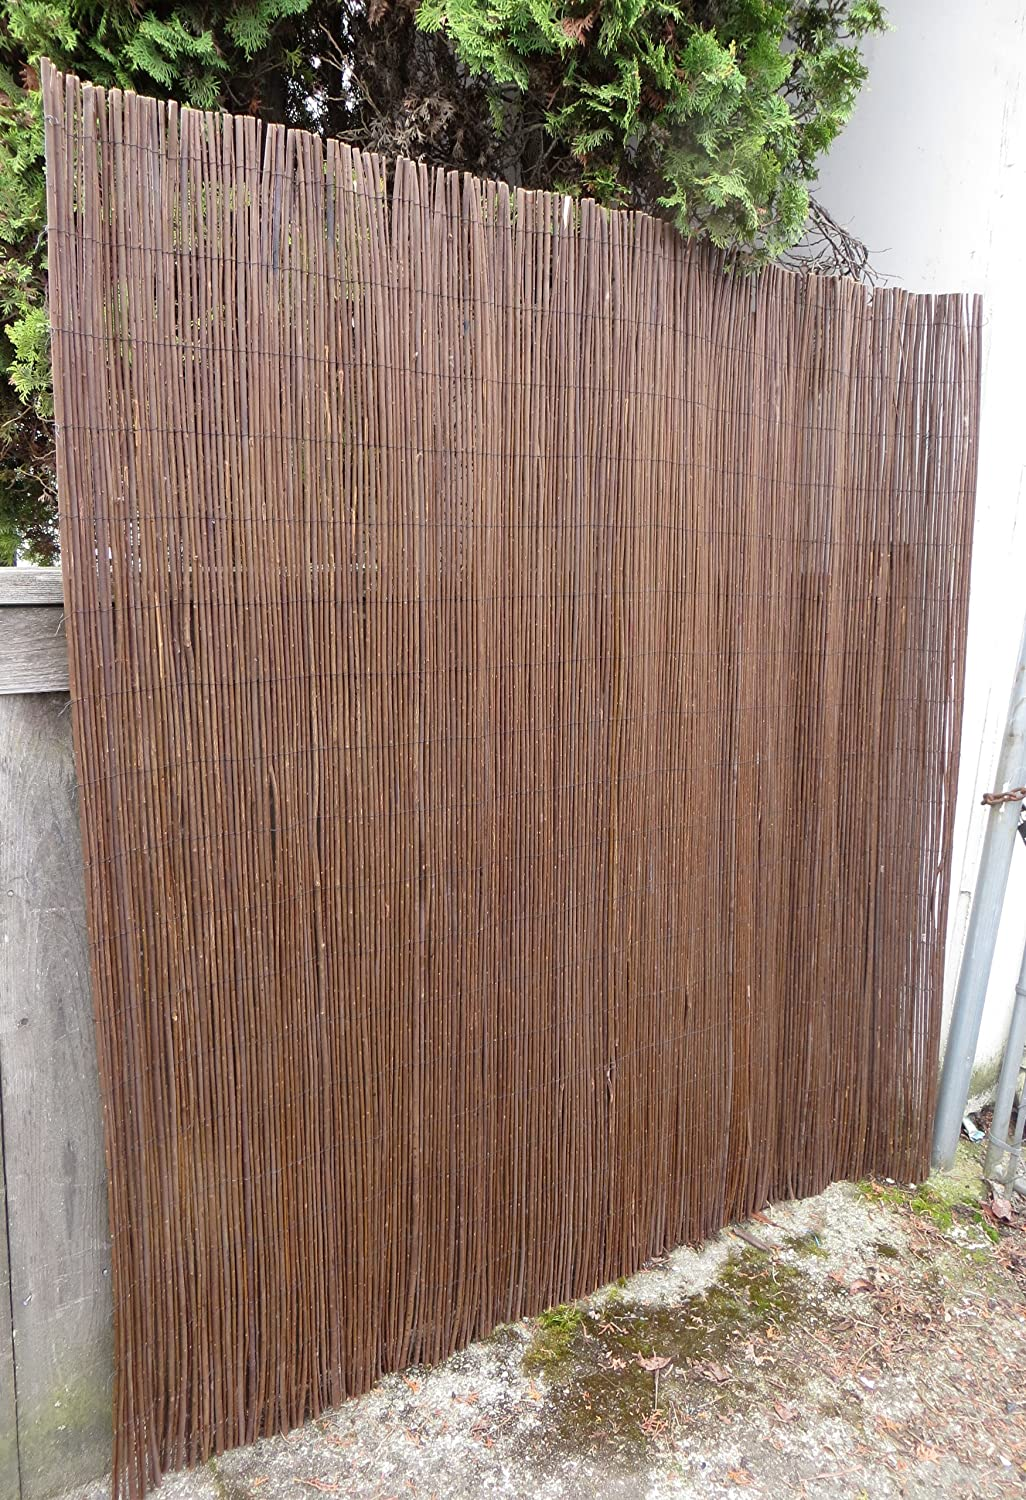 Amazon.com : Master Garden Products Willow Fence Screen, 6 by 14 ...